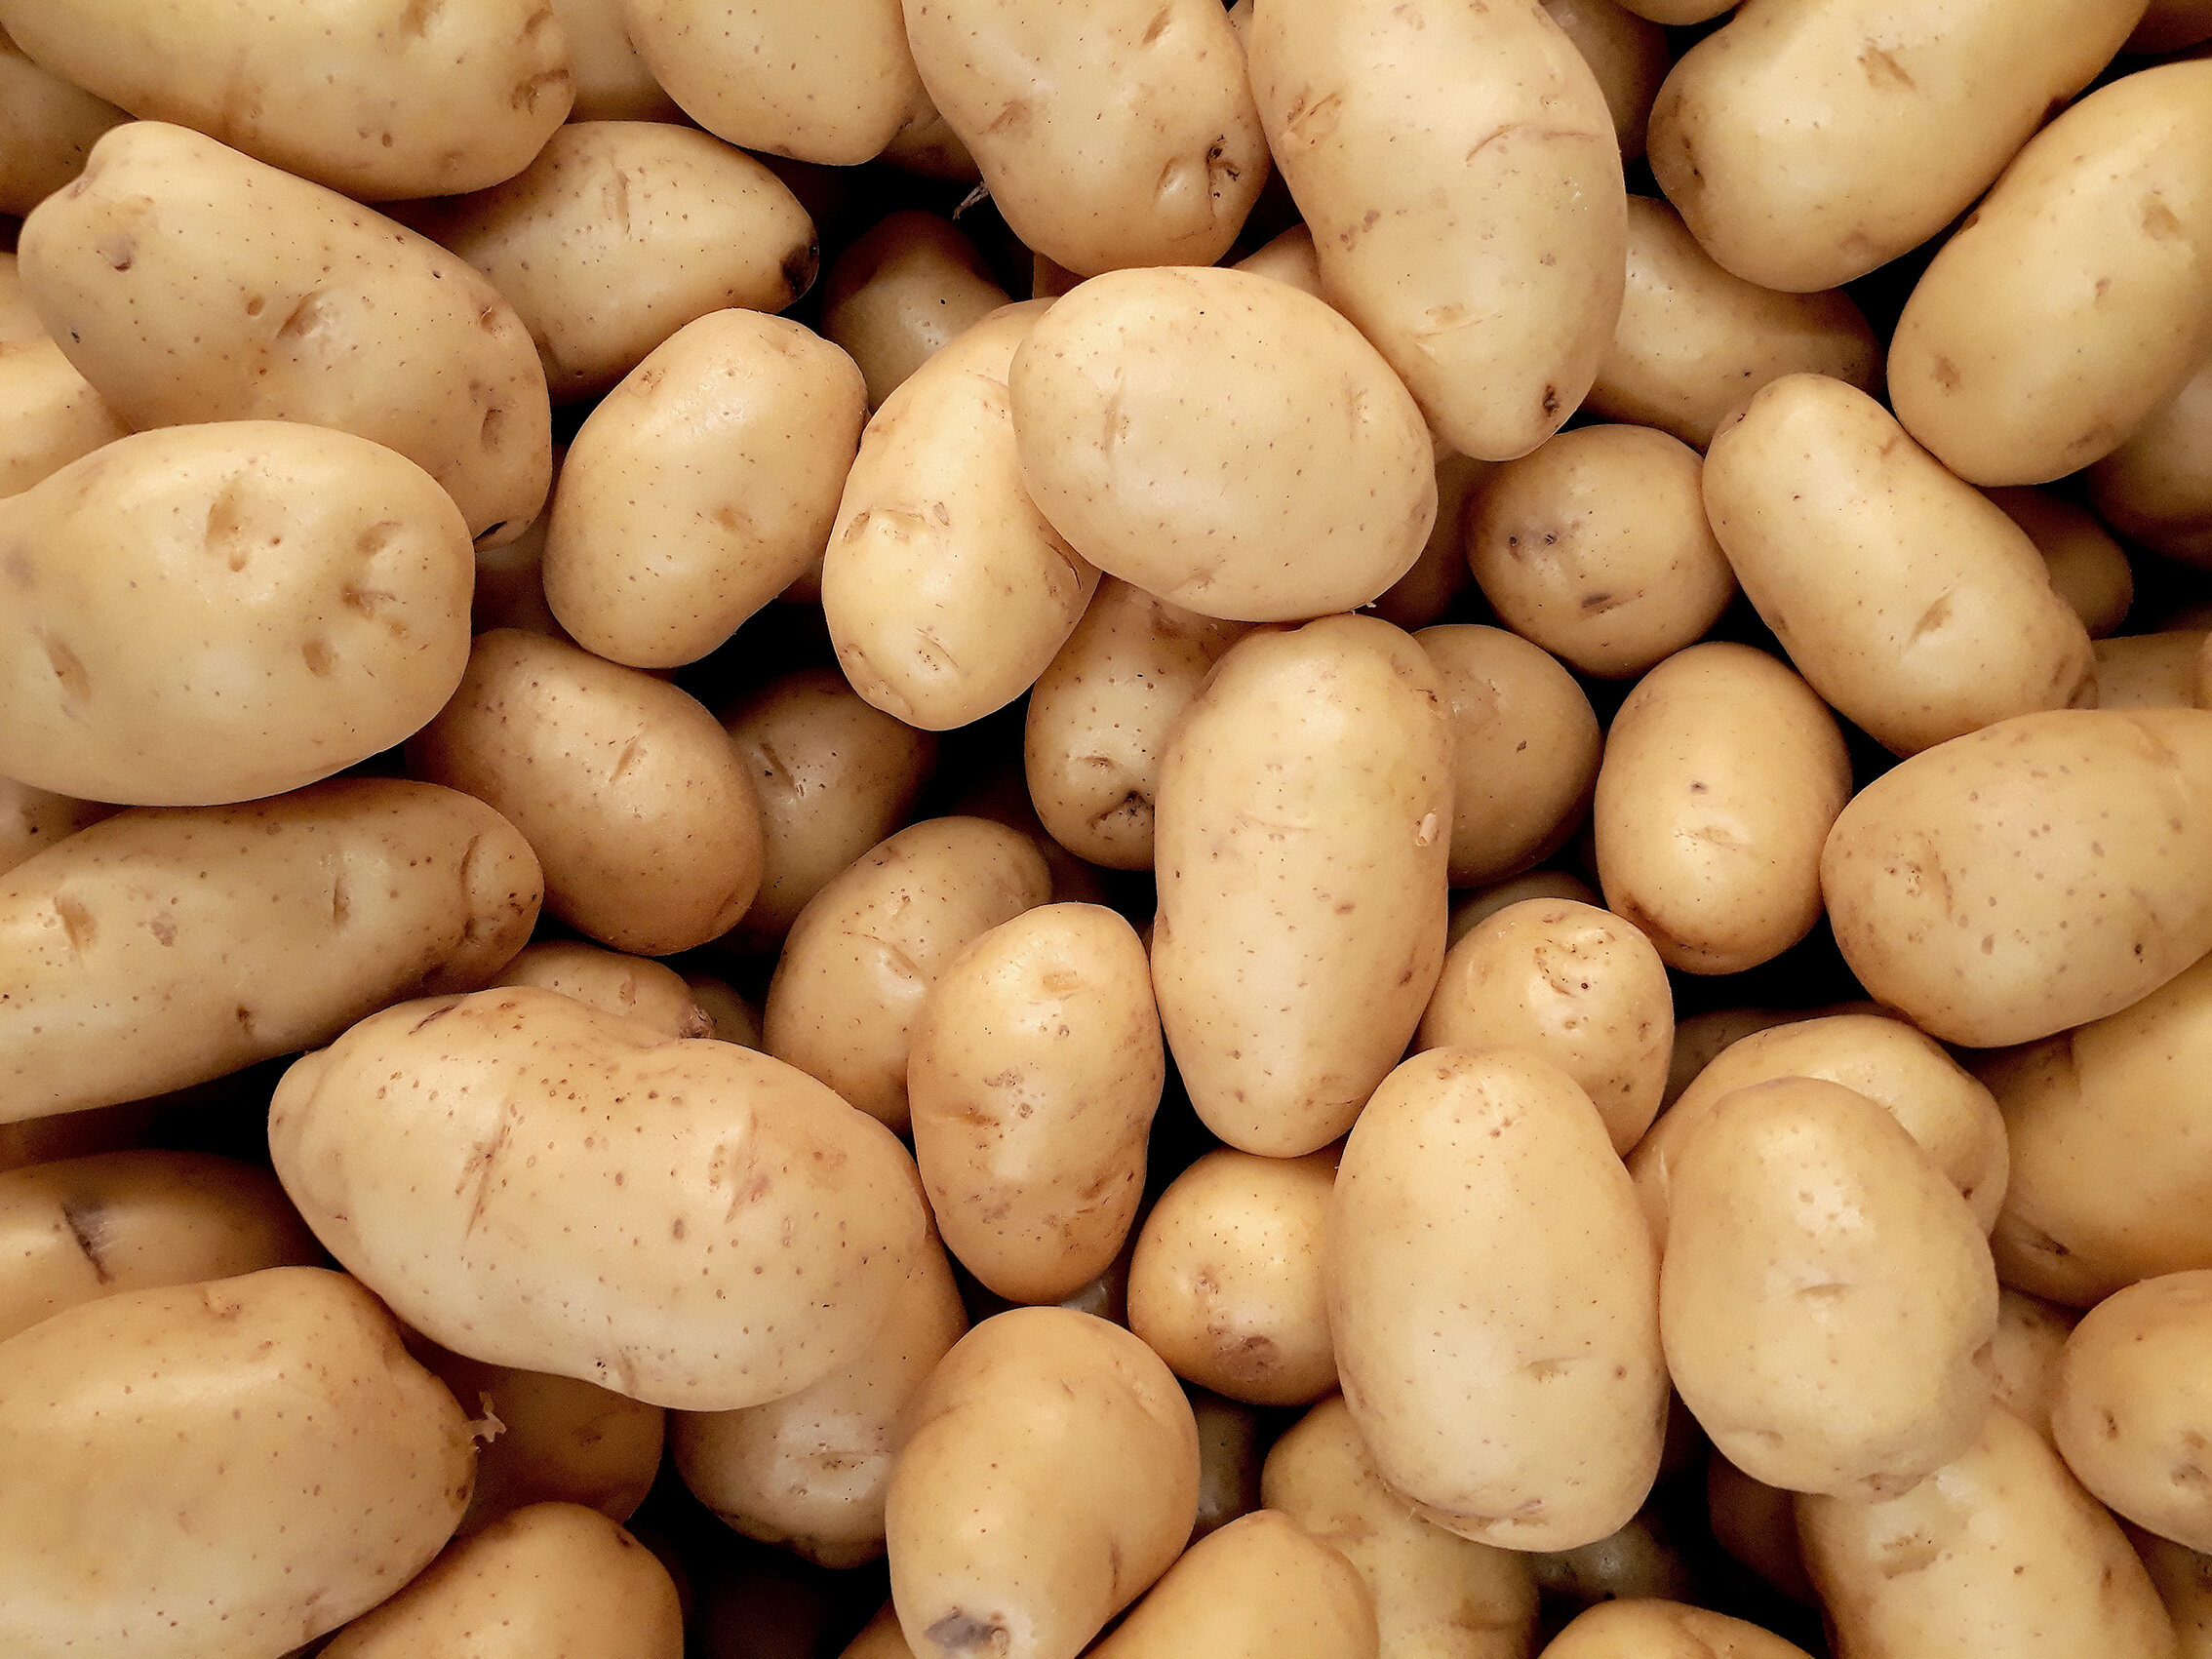 photo-of-pile-of-potatoes-2286776 (1)XS.jpg